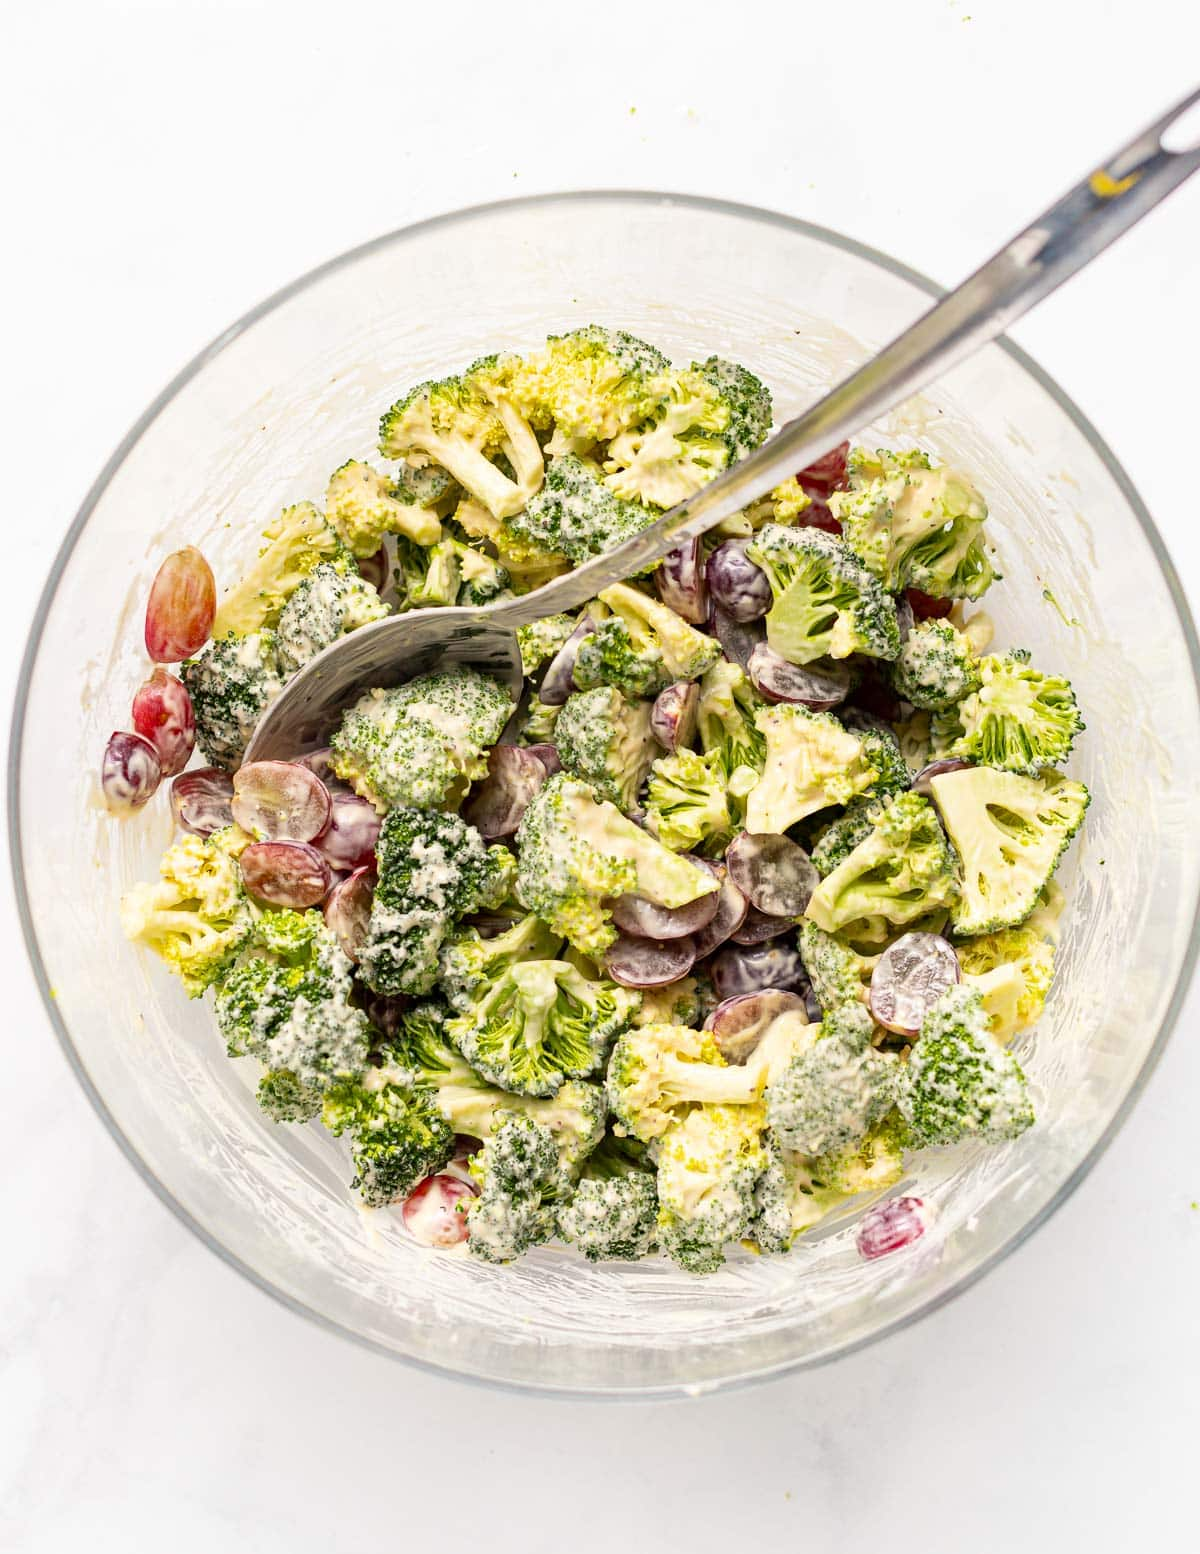 a bowl of vegan broccoli salad with a spoon in it